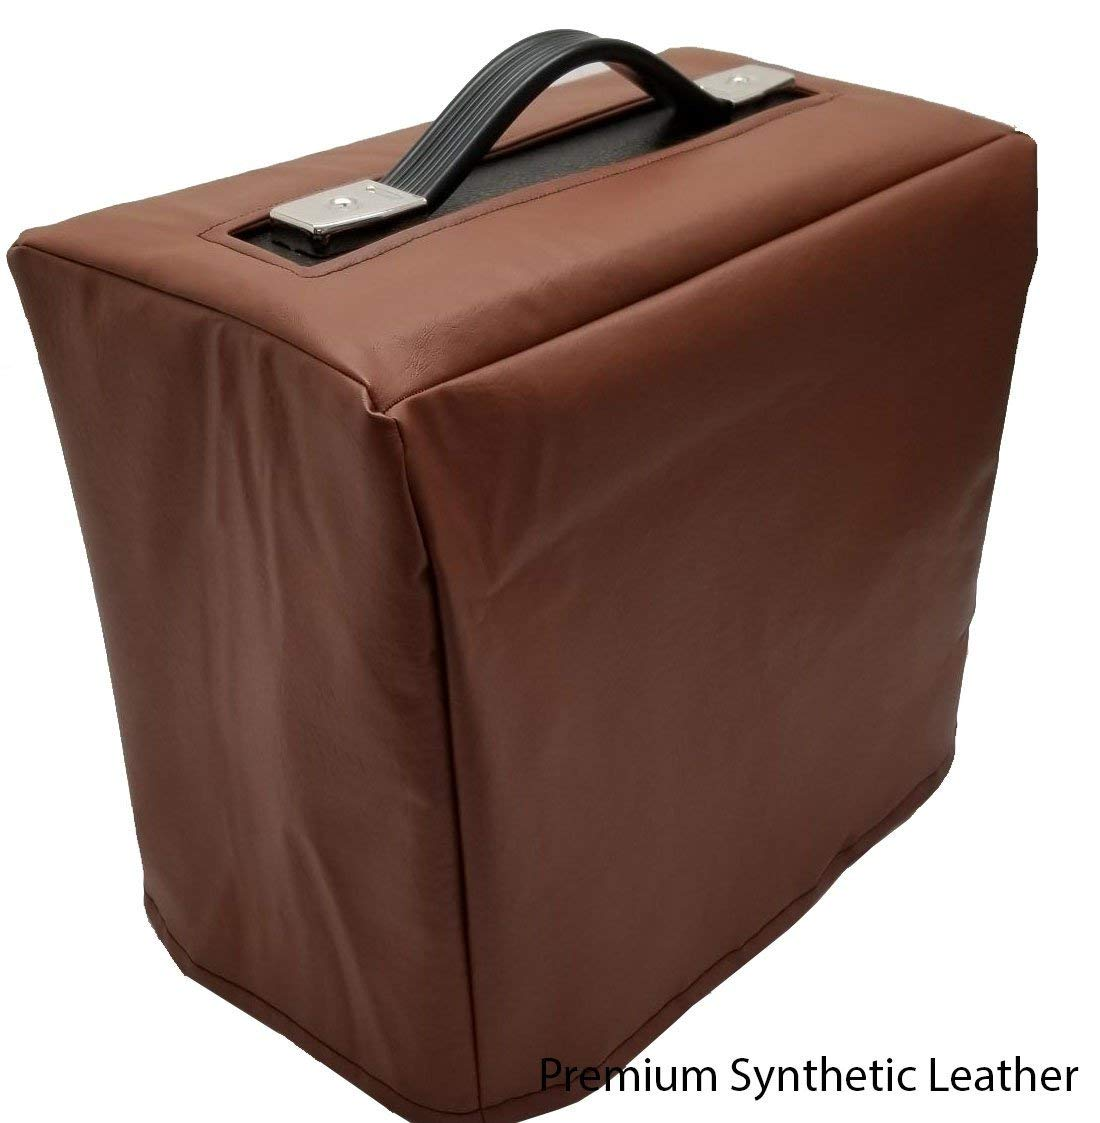 DCFY Guitar Amplifier Dust Covers for Bugera Guitar Combo AC60 | Premium Synthetic Leather - Padded